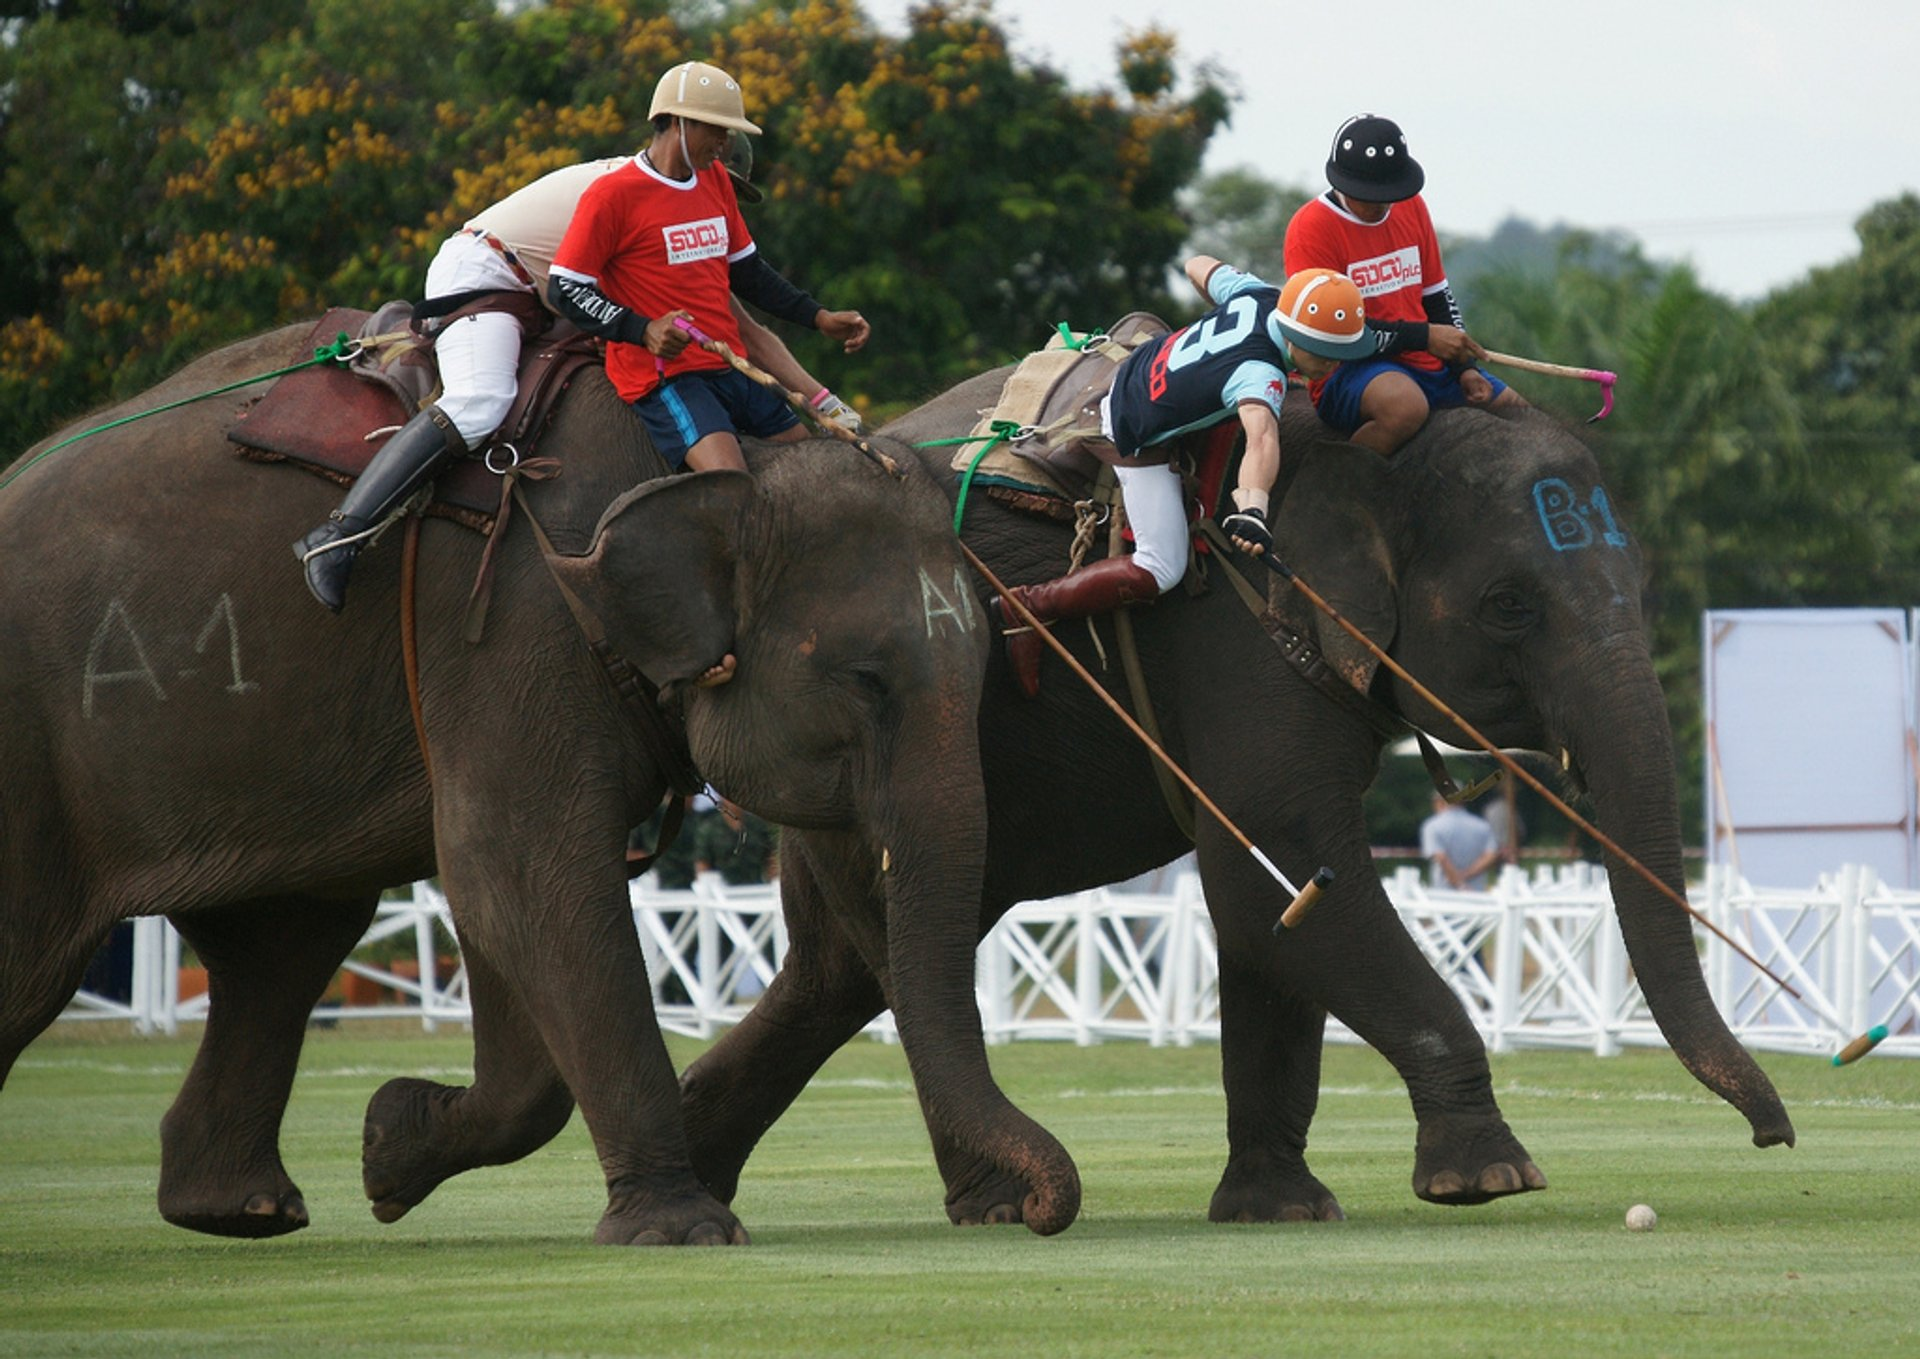 King's Cup Elephant Polo in Thailand 2019 - Best Time